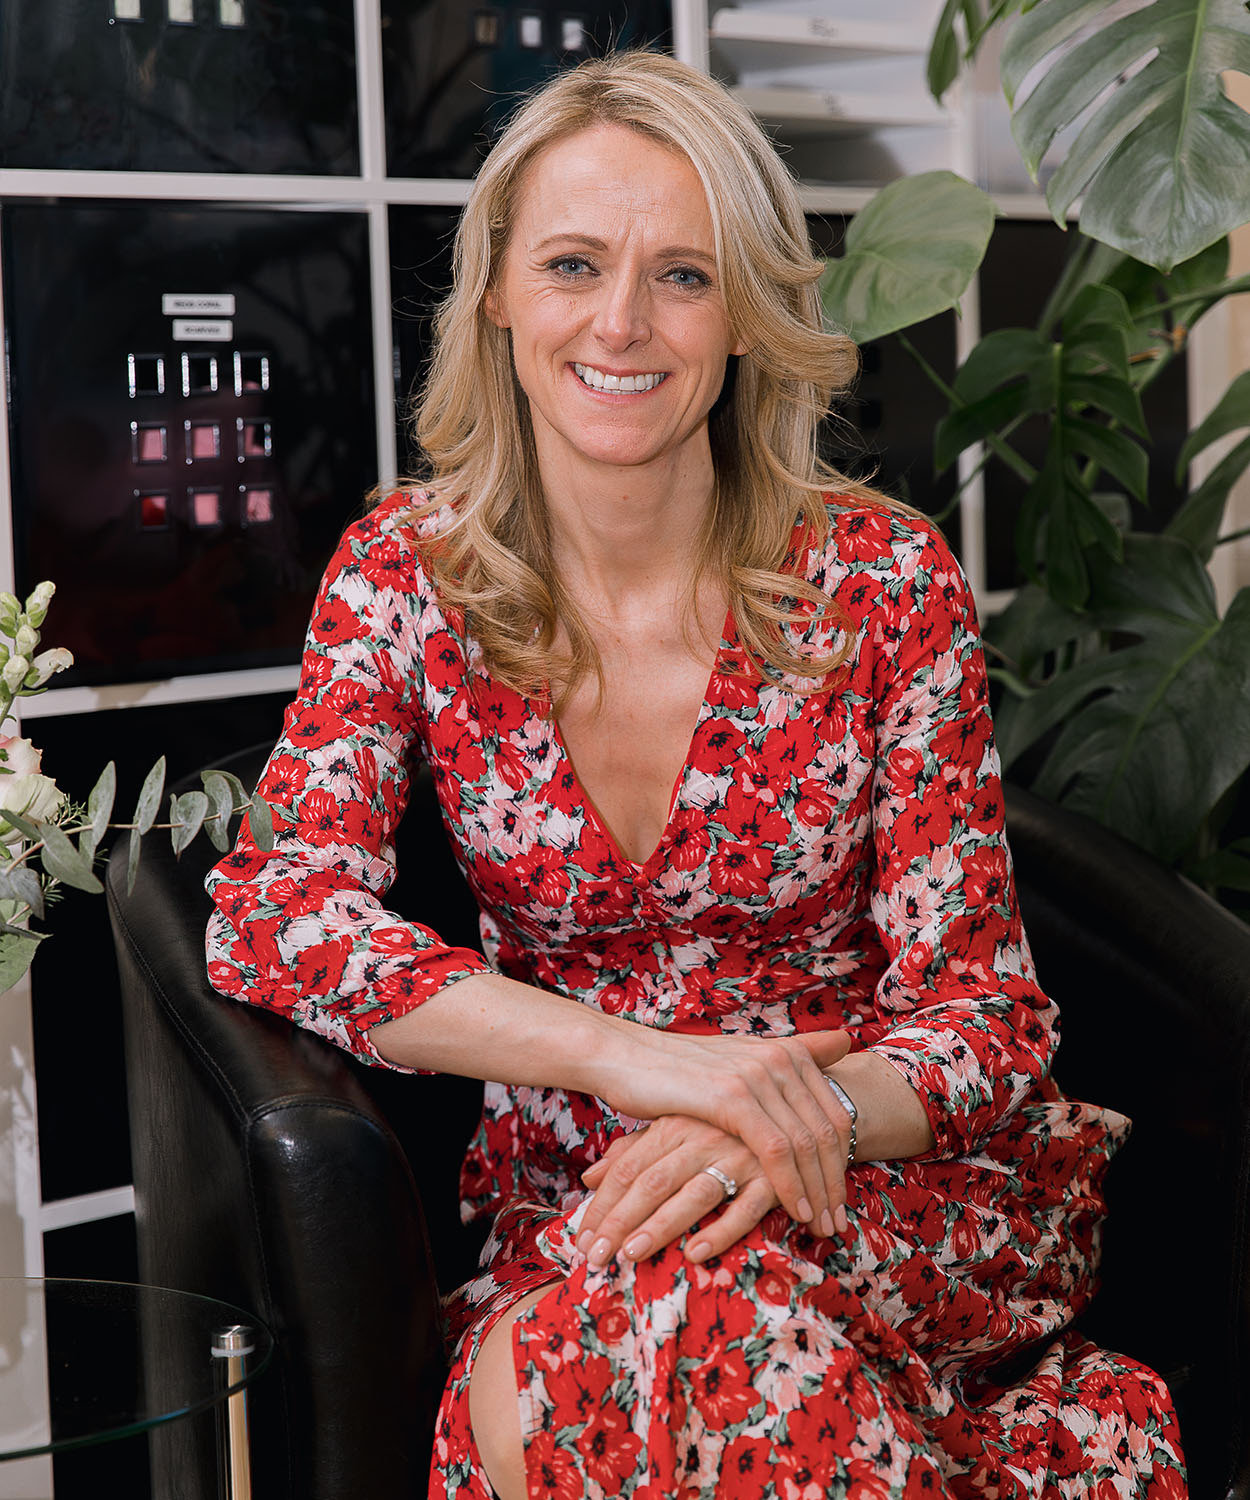 Kate Stephens, Ceo of Smart Works Charity wearing a floral red dress seated at an event